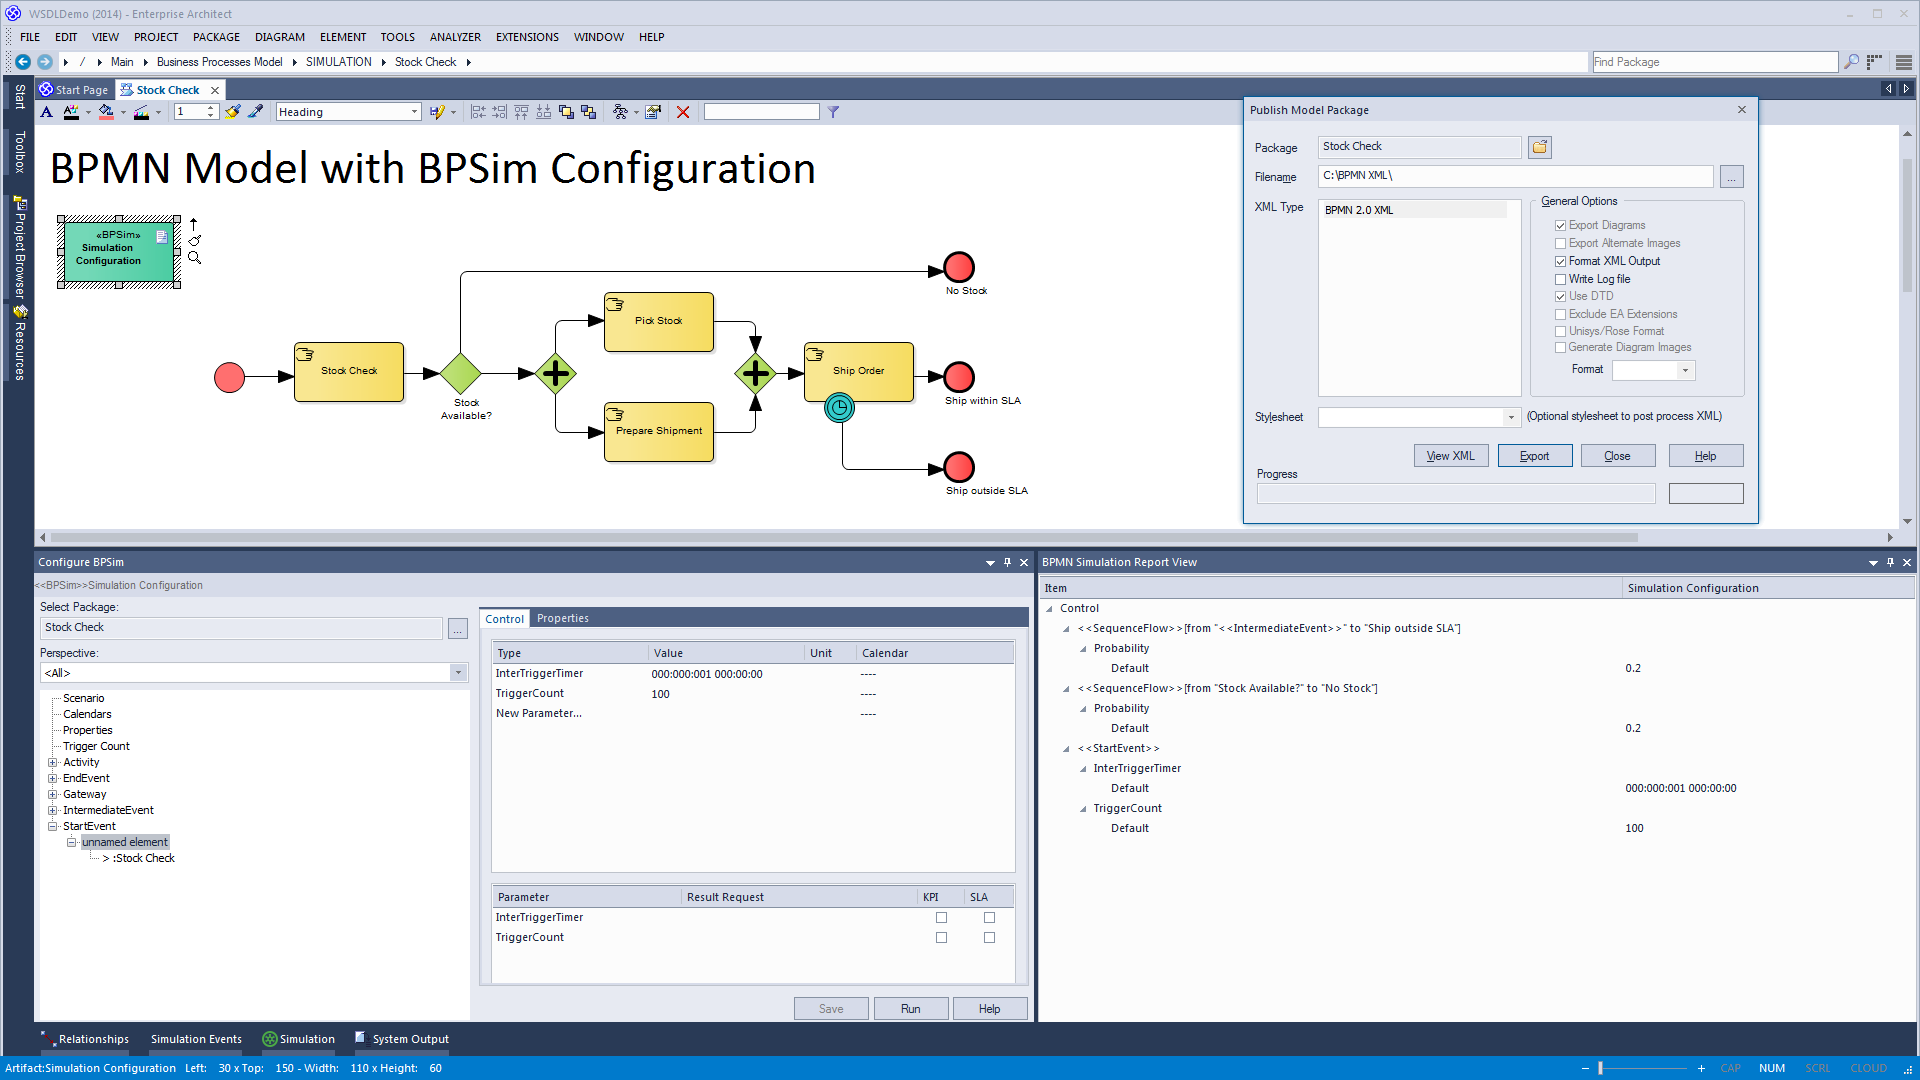 BPMN Simulation Report View